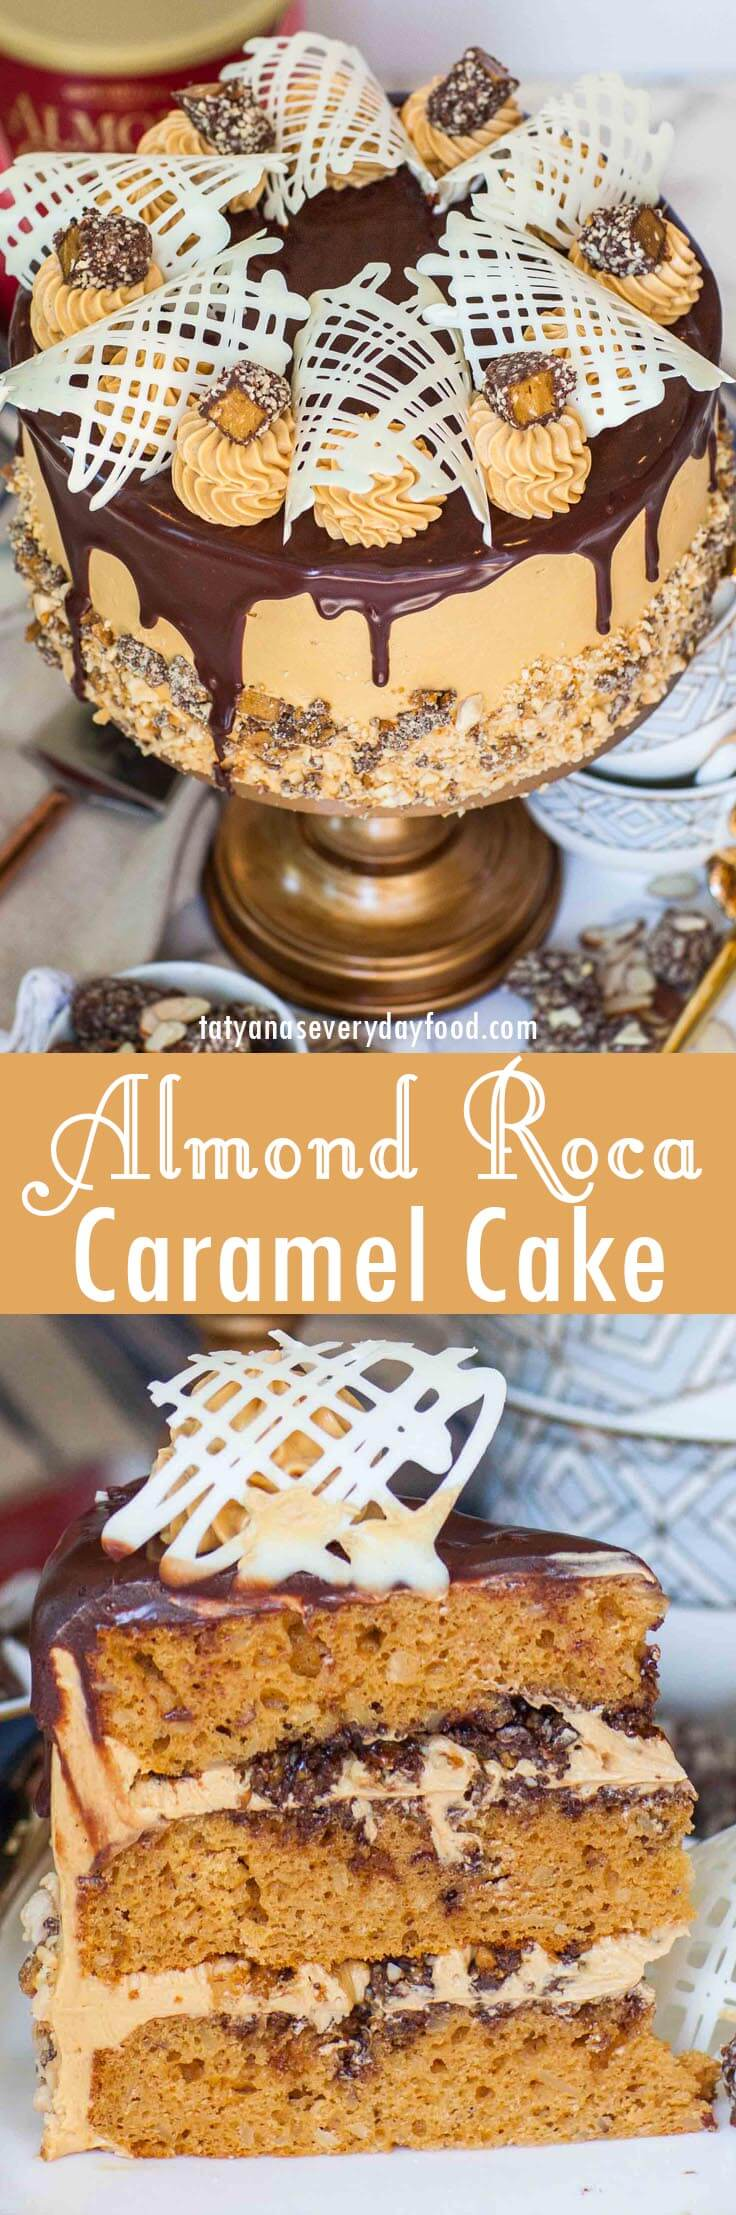 Almond Roca Caramel Cake video recipe